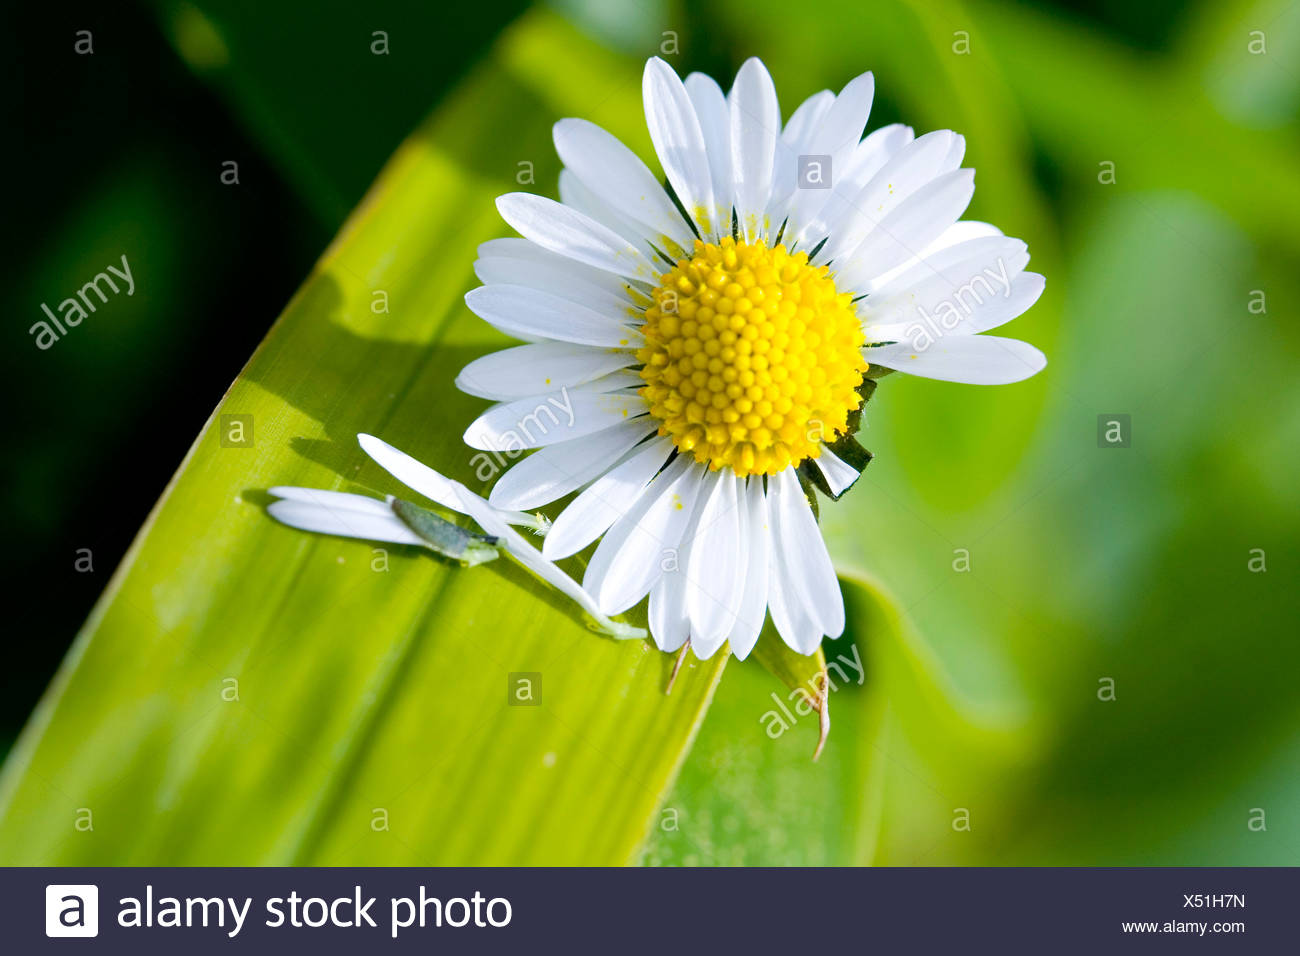 Close-up of white daisy (Bellis perennis) Photo Stock